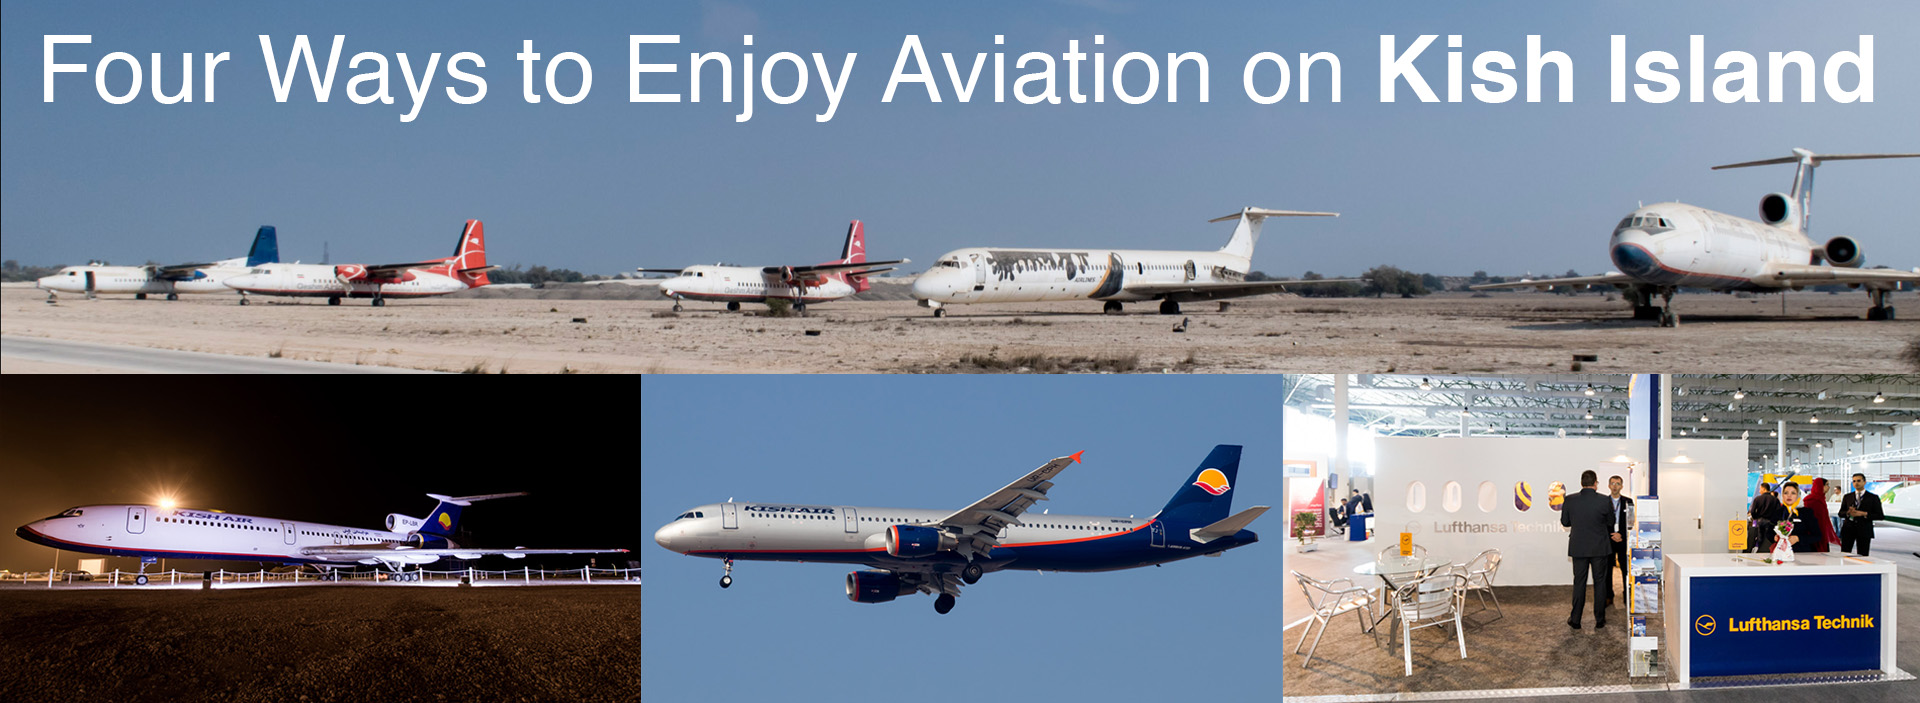 Four Ways to Enjoy Aviation on Kish Island